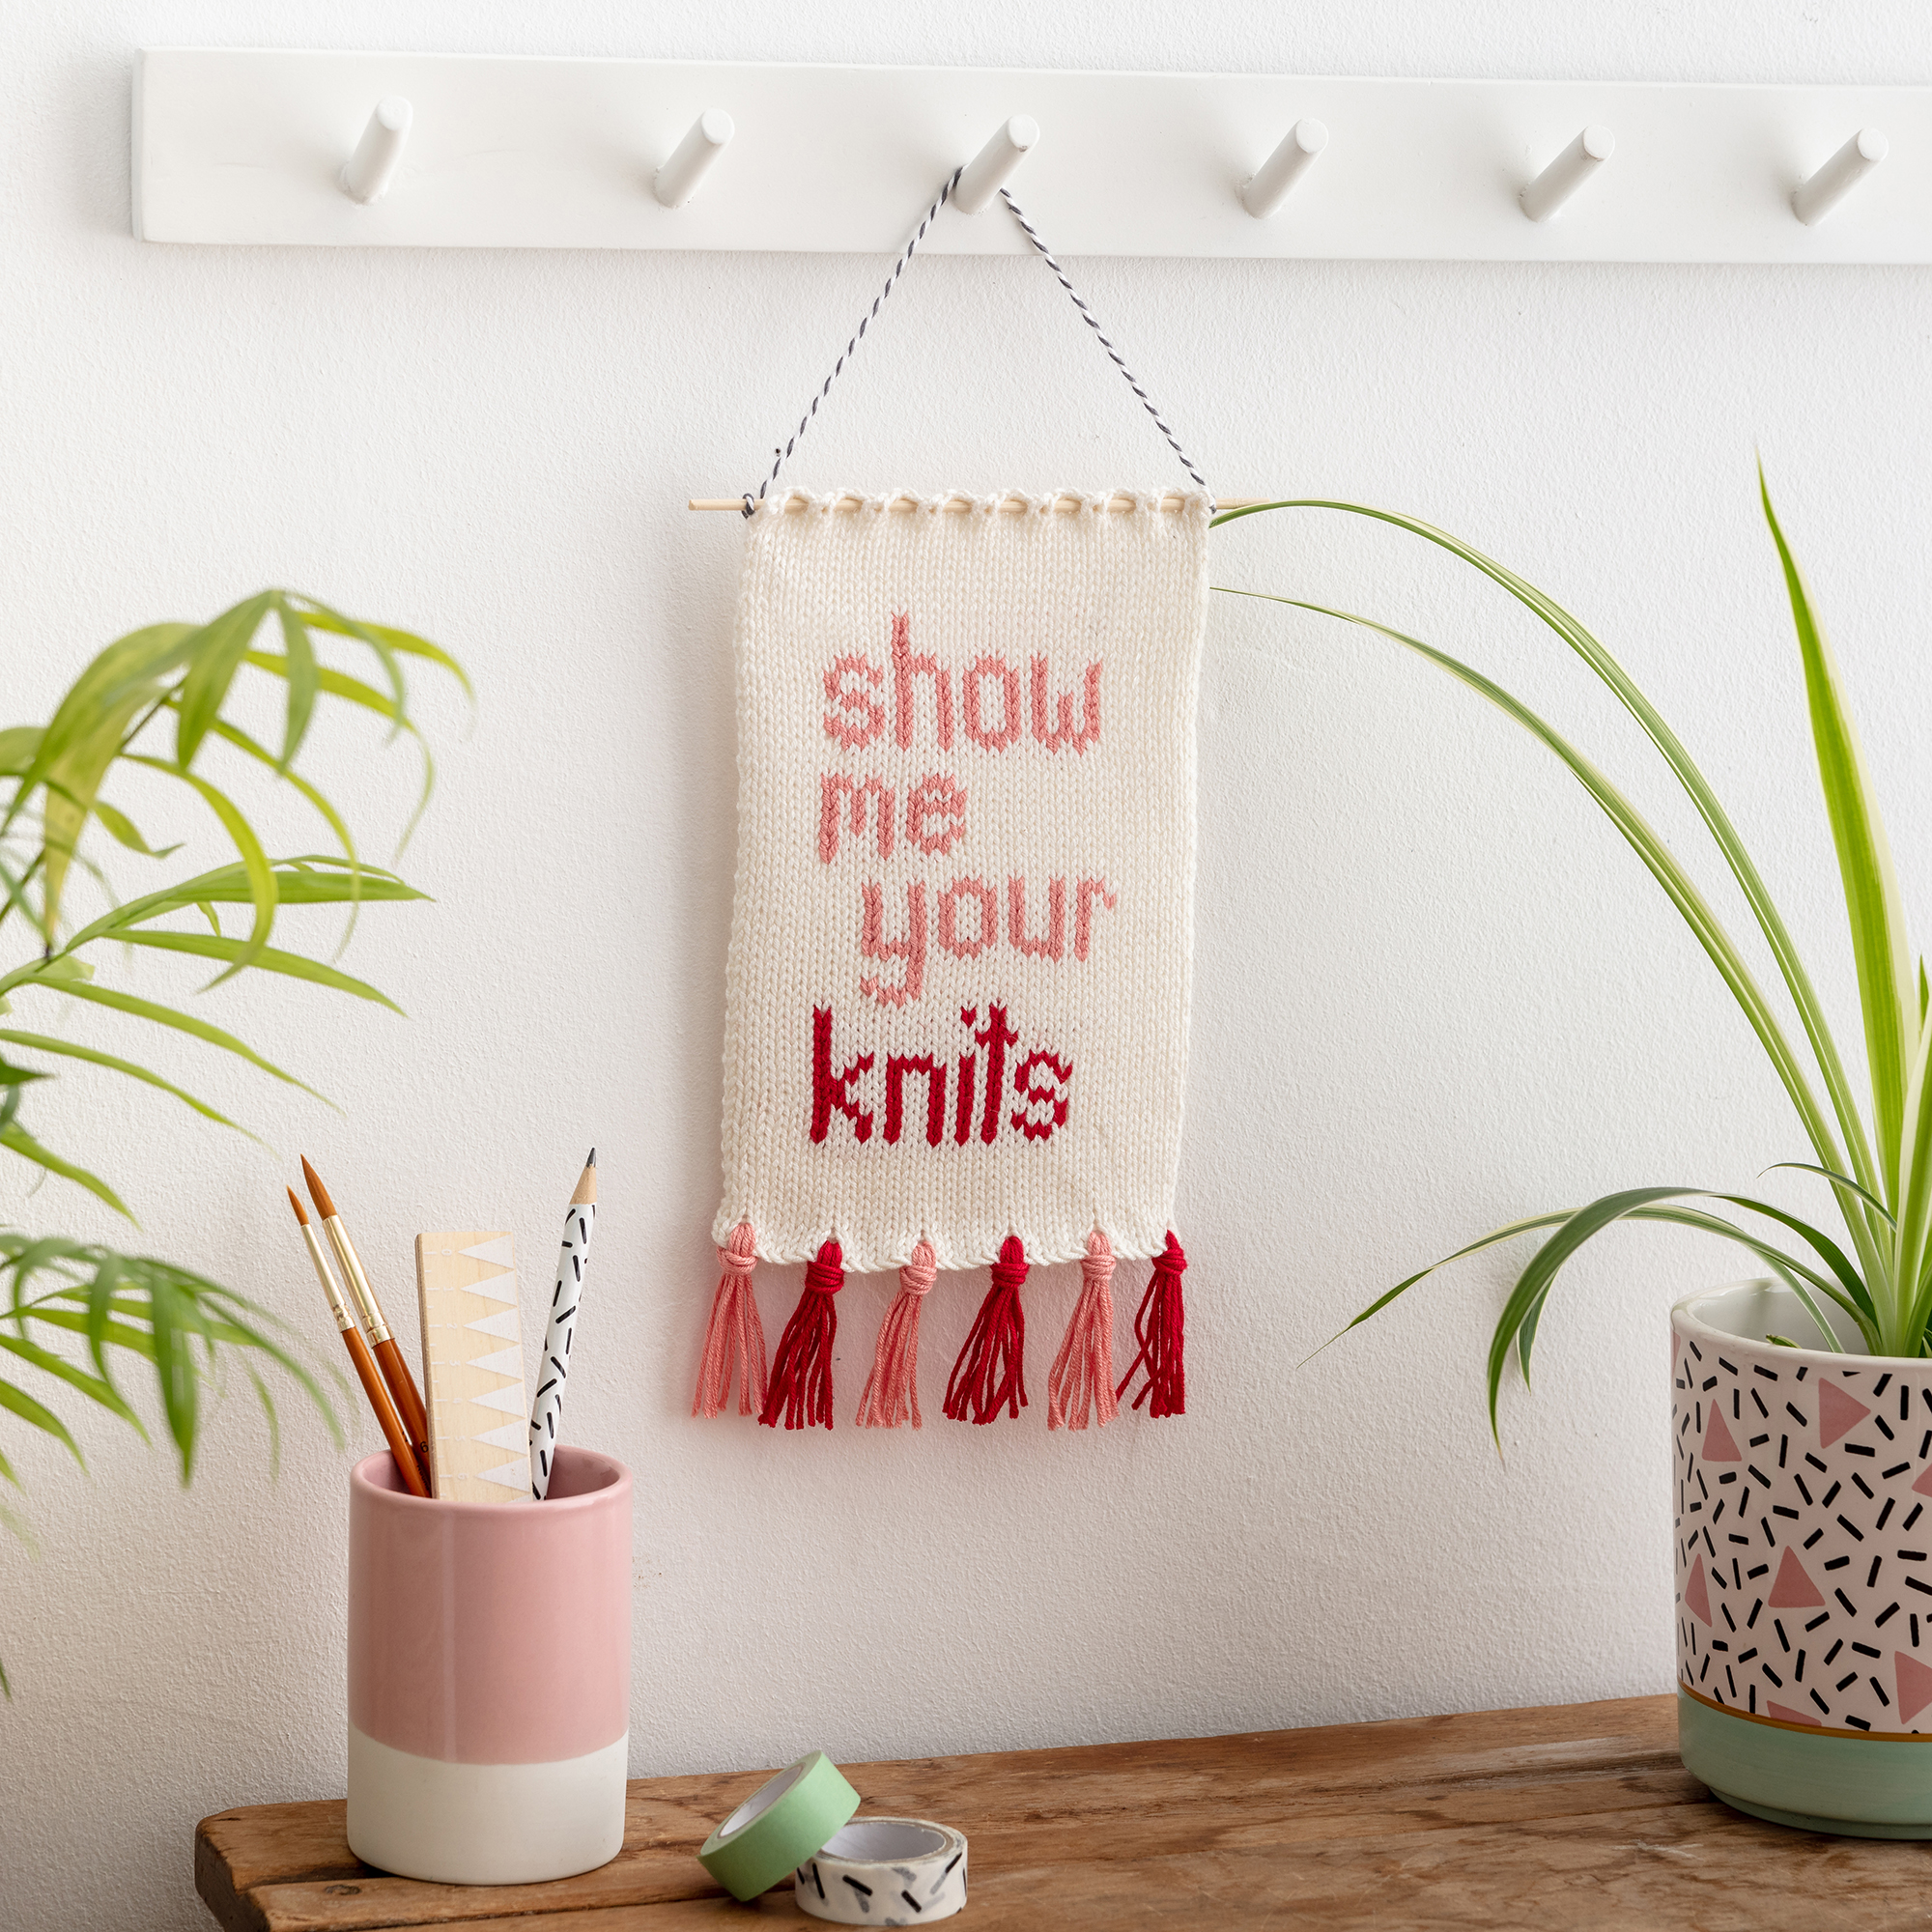 show me your knits knitted wall hanging